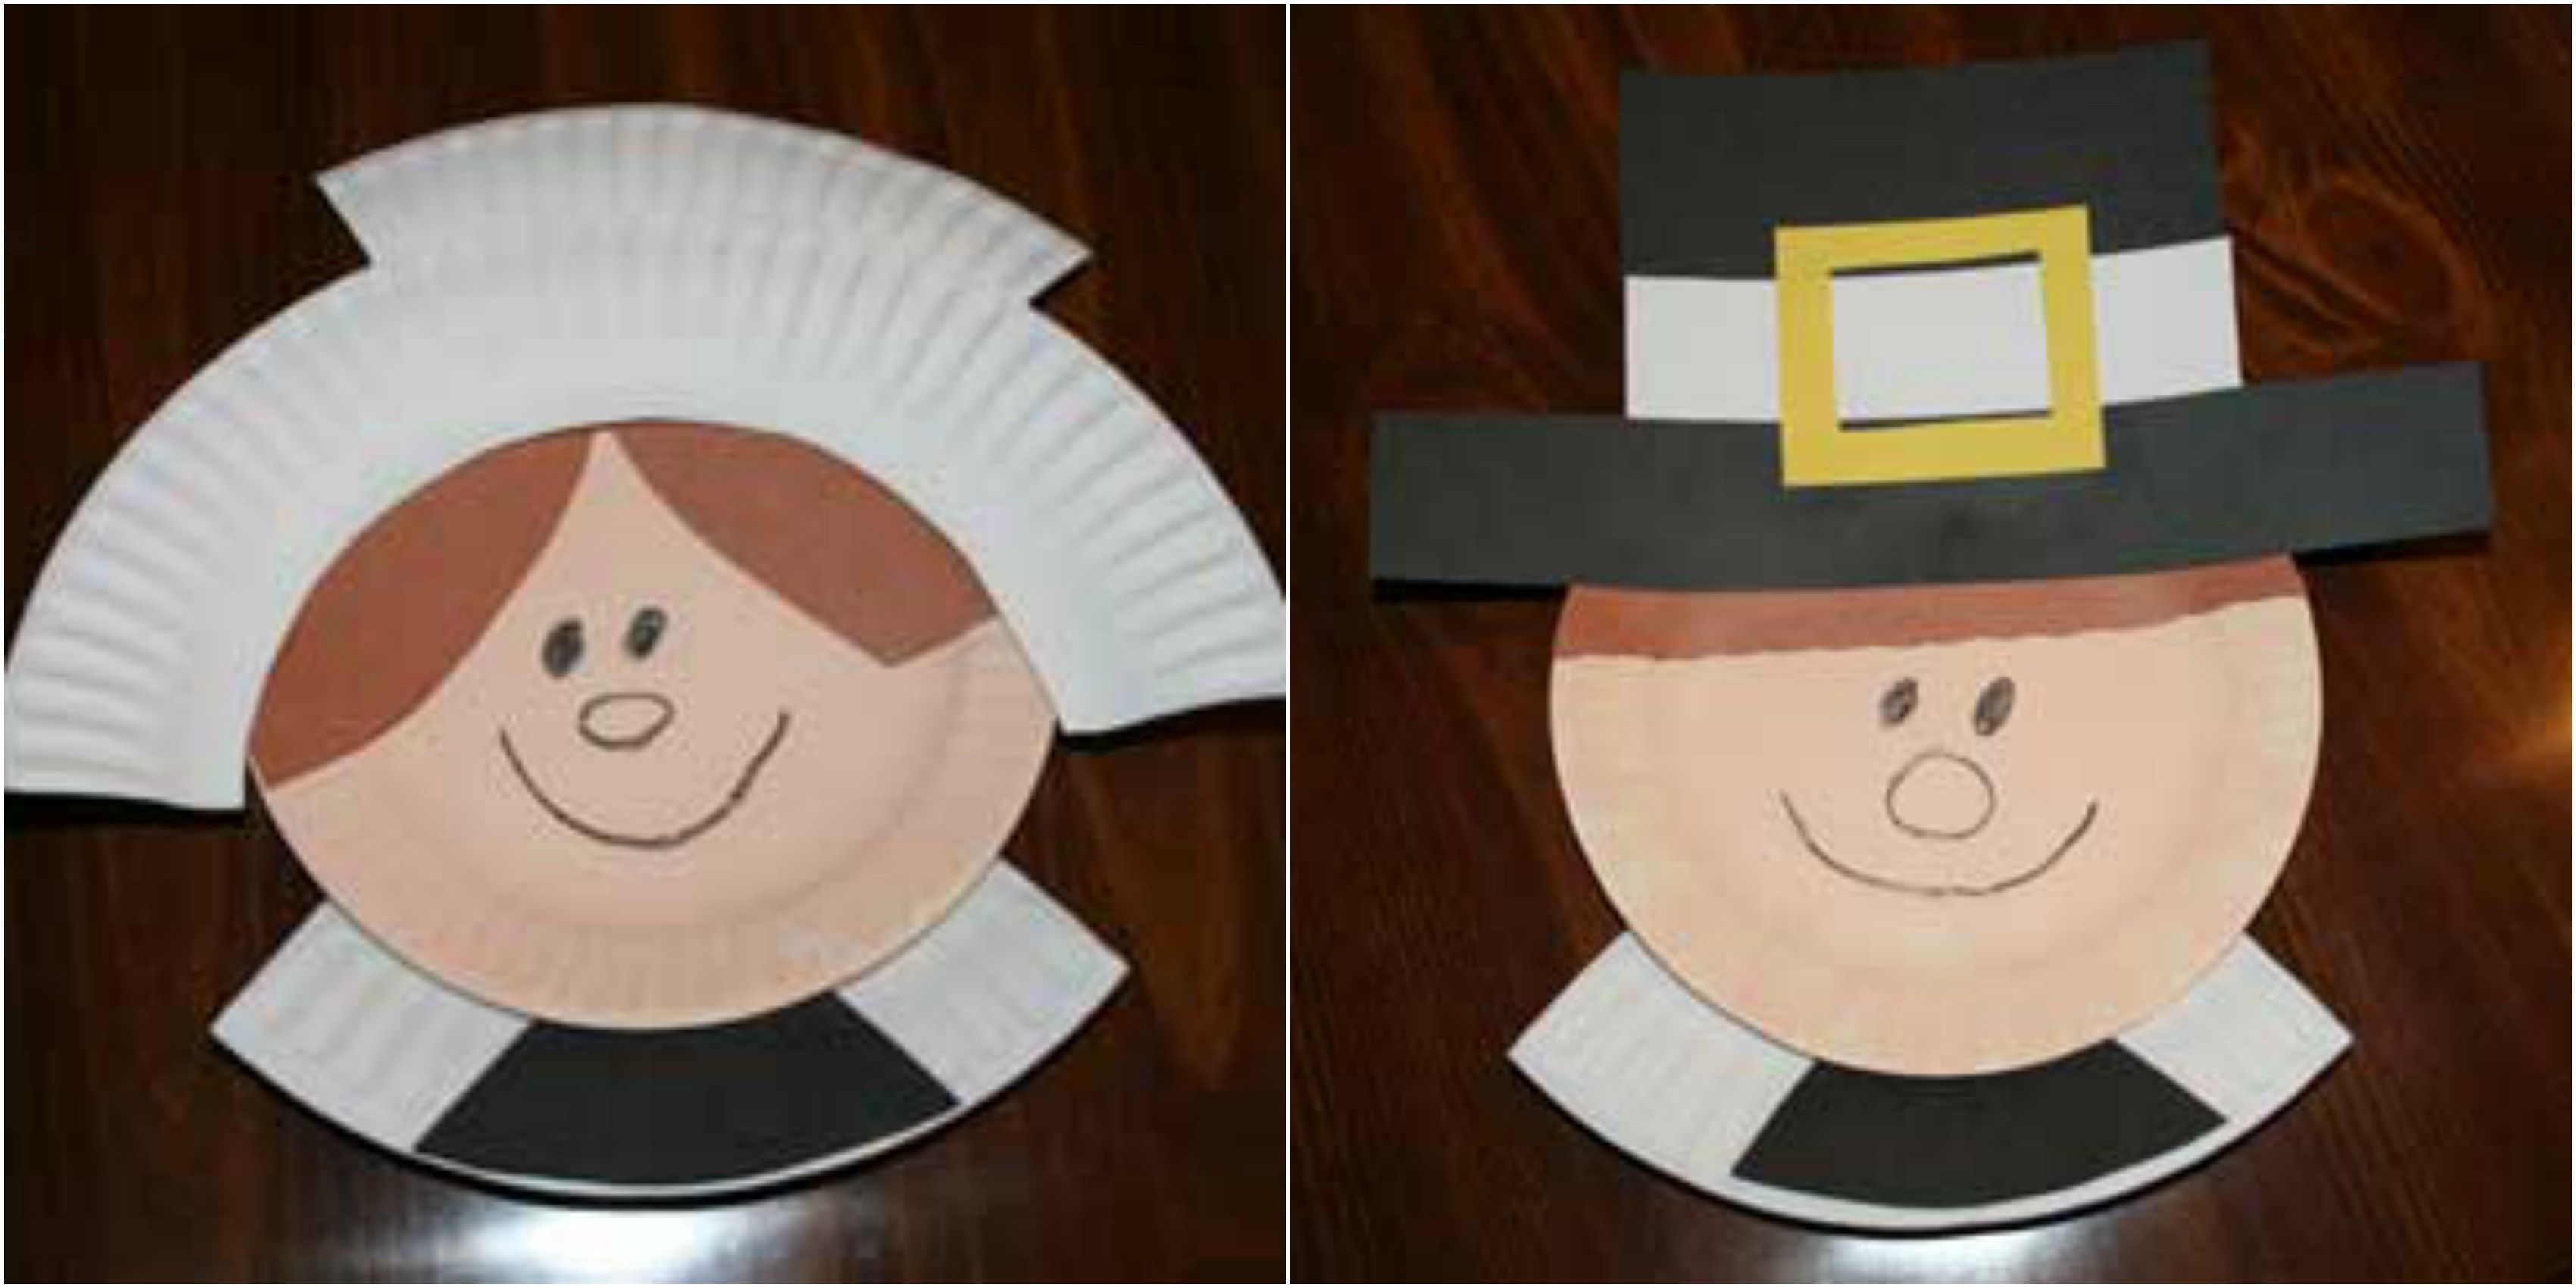 33 Easy Thanksgiving Crafts for Kids - Thanksgiving DIY Ideas for Children & 33 Easy Thanksgiving Crafts for Kids - Thanksgiving DIY Ideas for ...